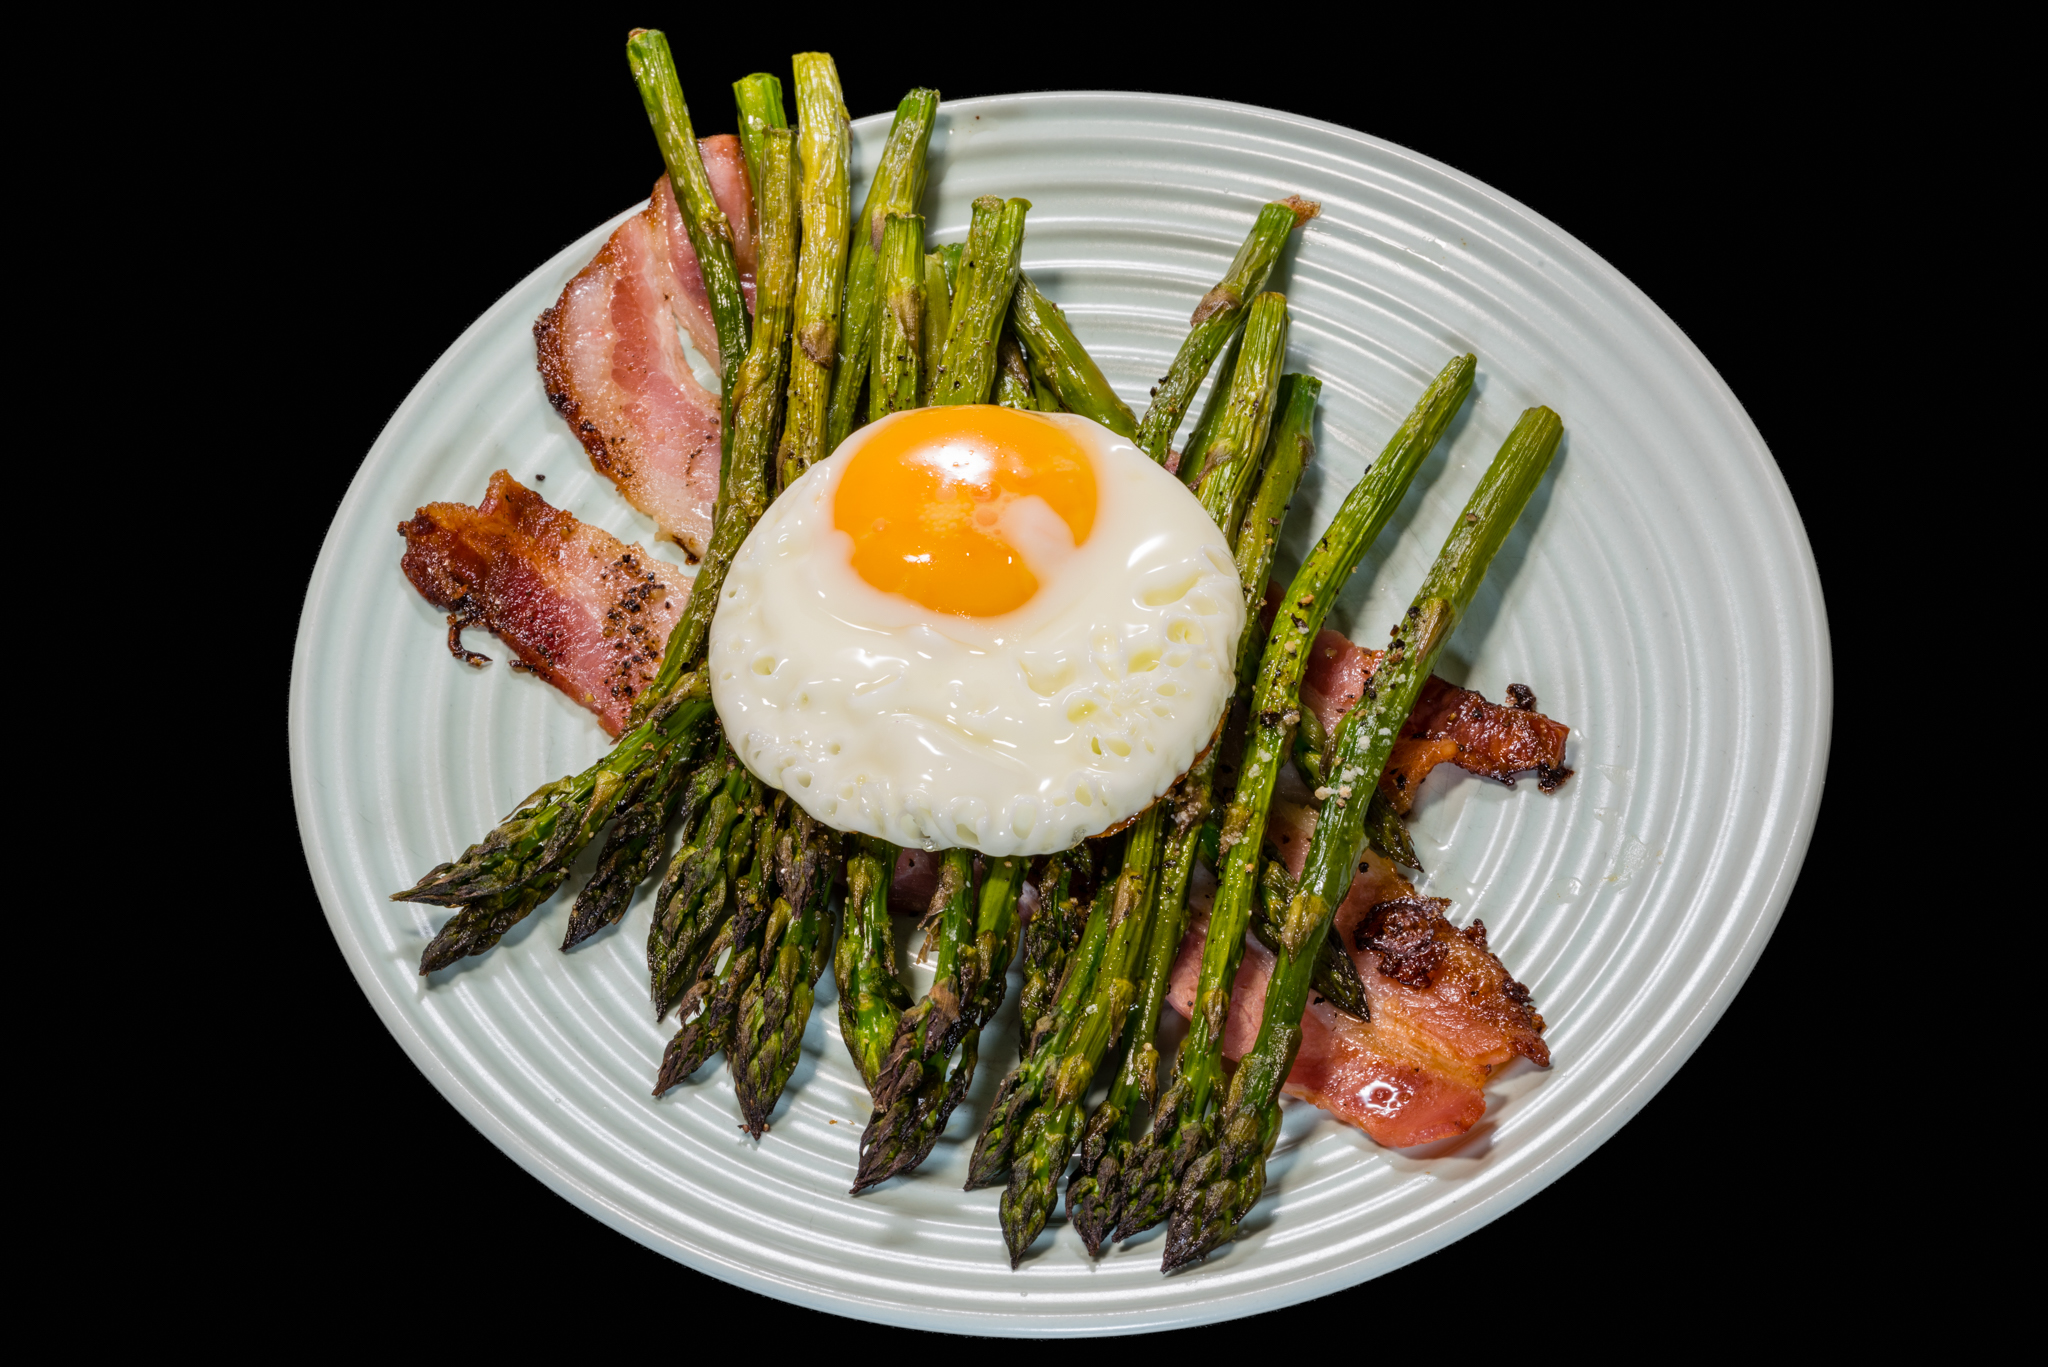 Bacon and egg with Australian Asparagus Gary Lum